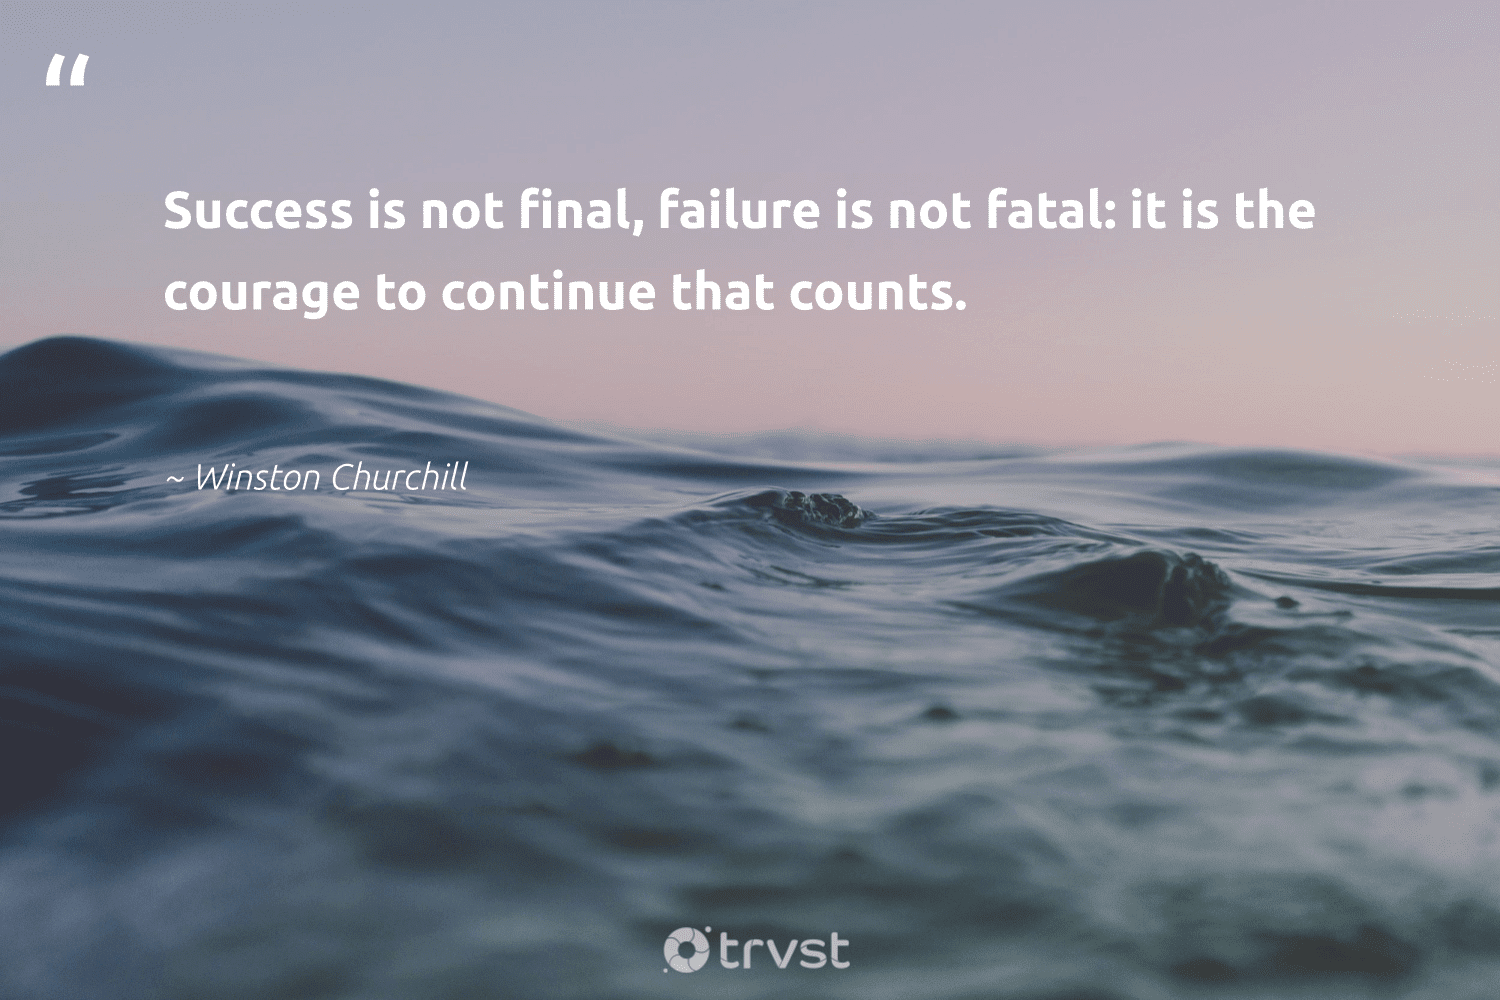 """""""Success is not final, failure is not fatal: it is the courage to continue that counts.""""  - Winston Churchill #trvst #quotes #success #motivation #successful #begreat #gogreen #mostwontiwill #failfast #futureofwork #ecoconscious #timemanagement"""